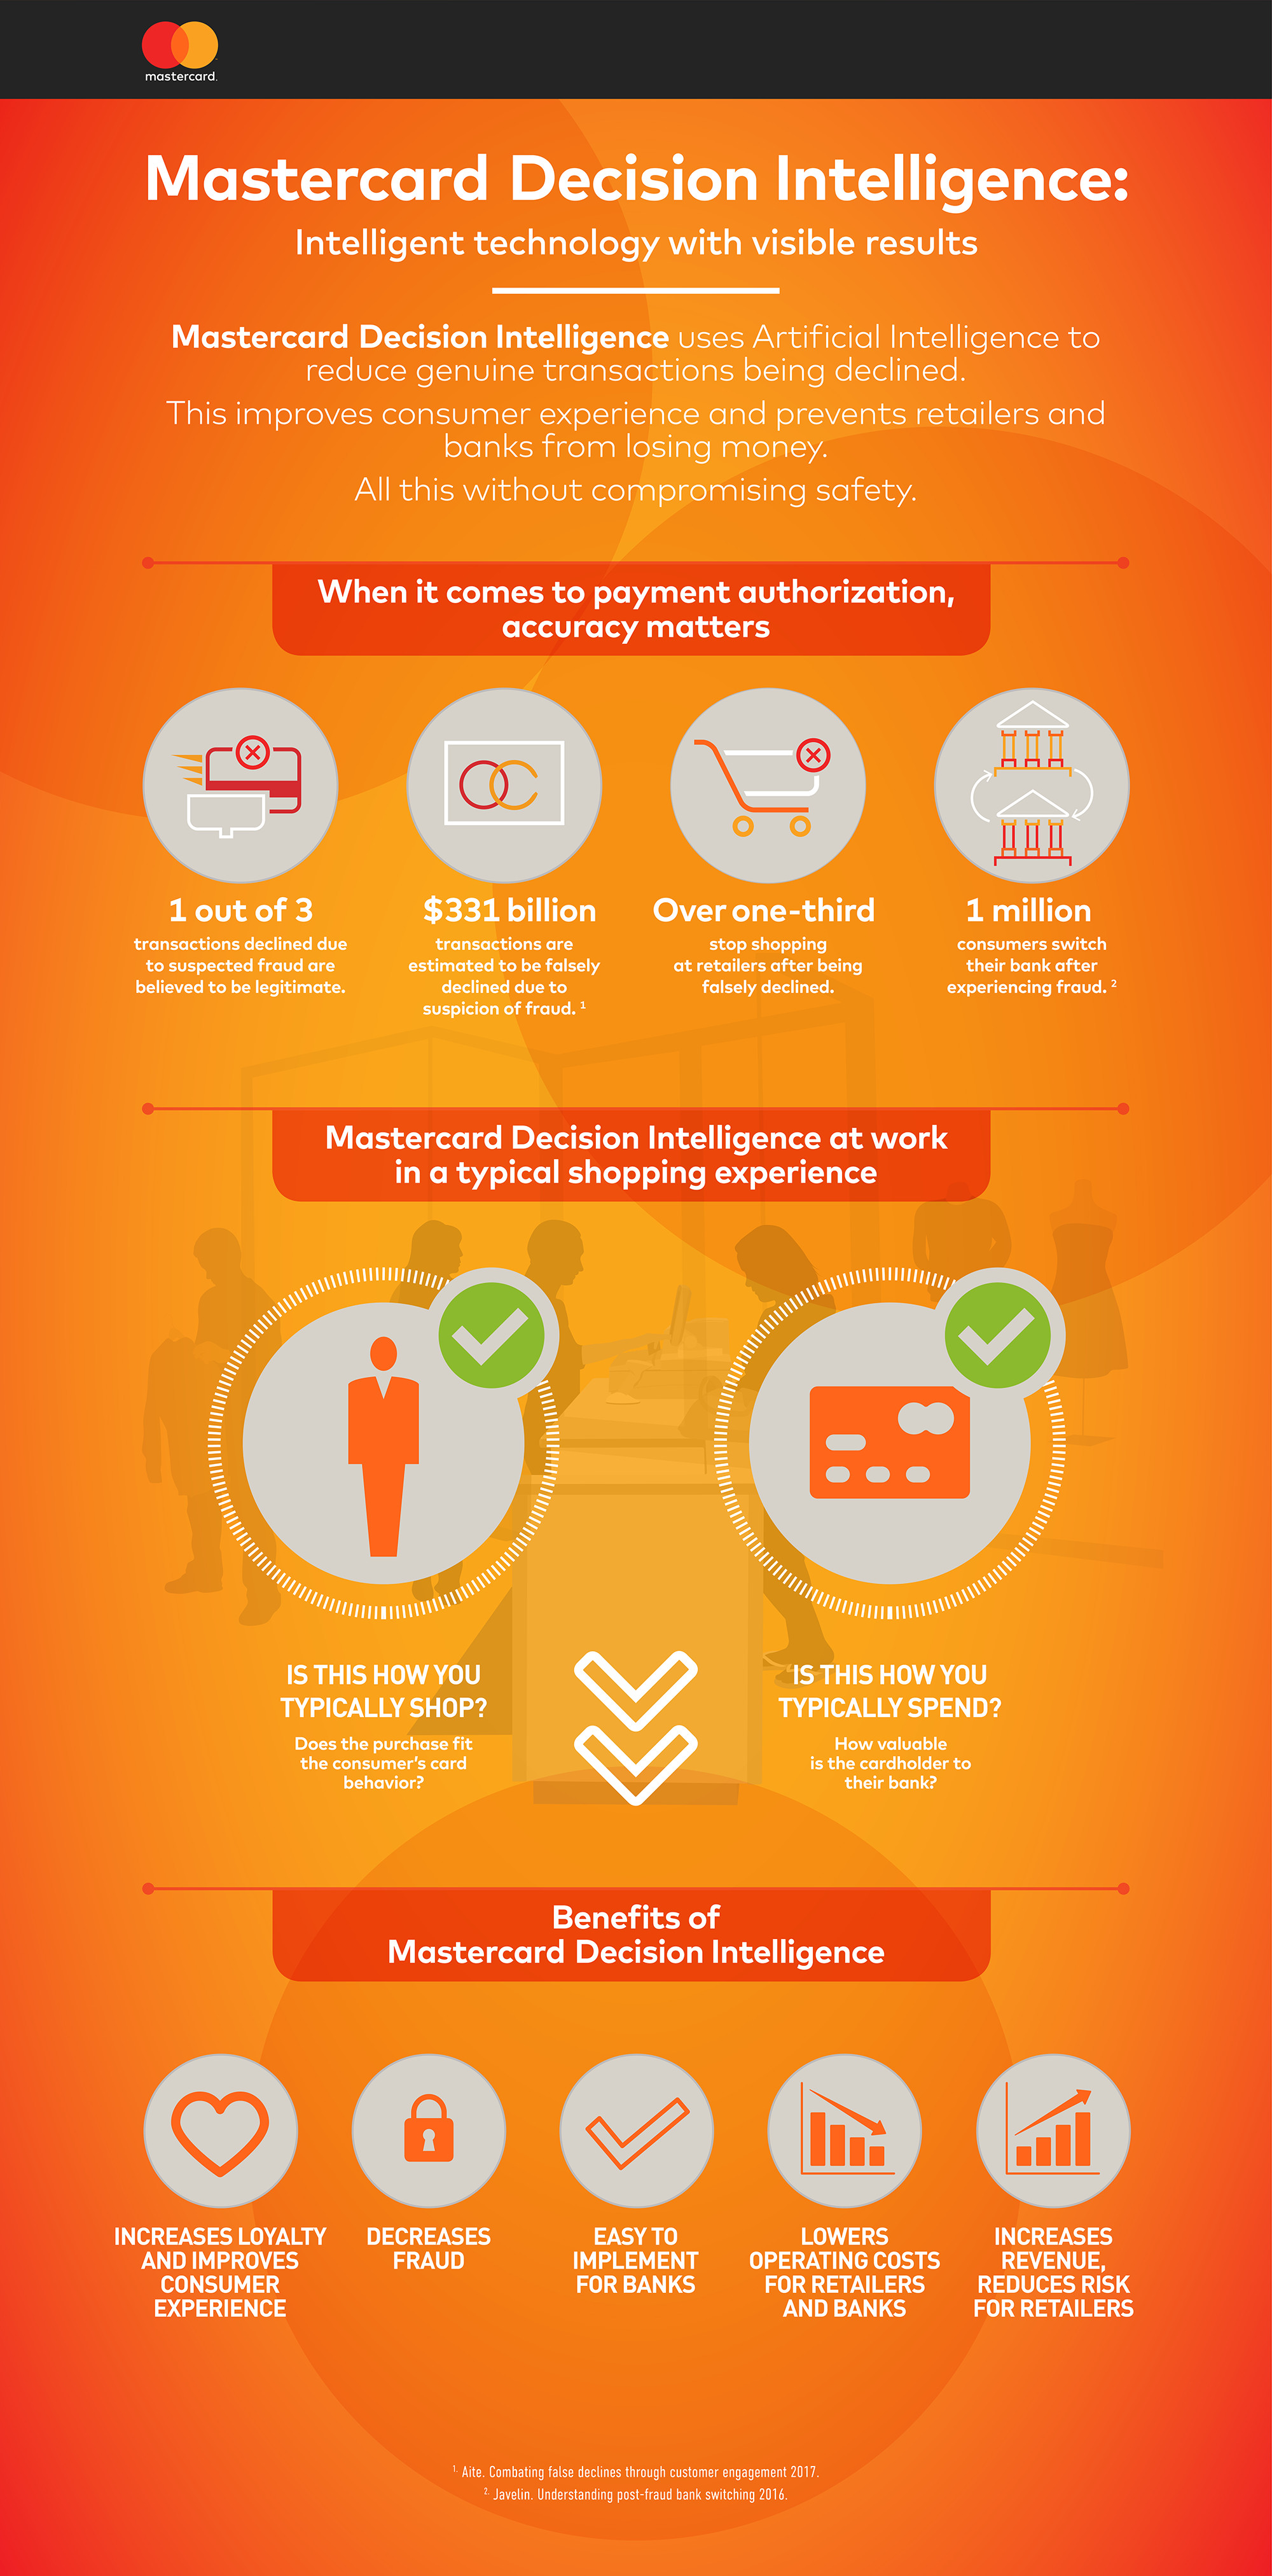 Mastercard Decision Intelligence